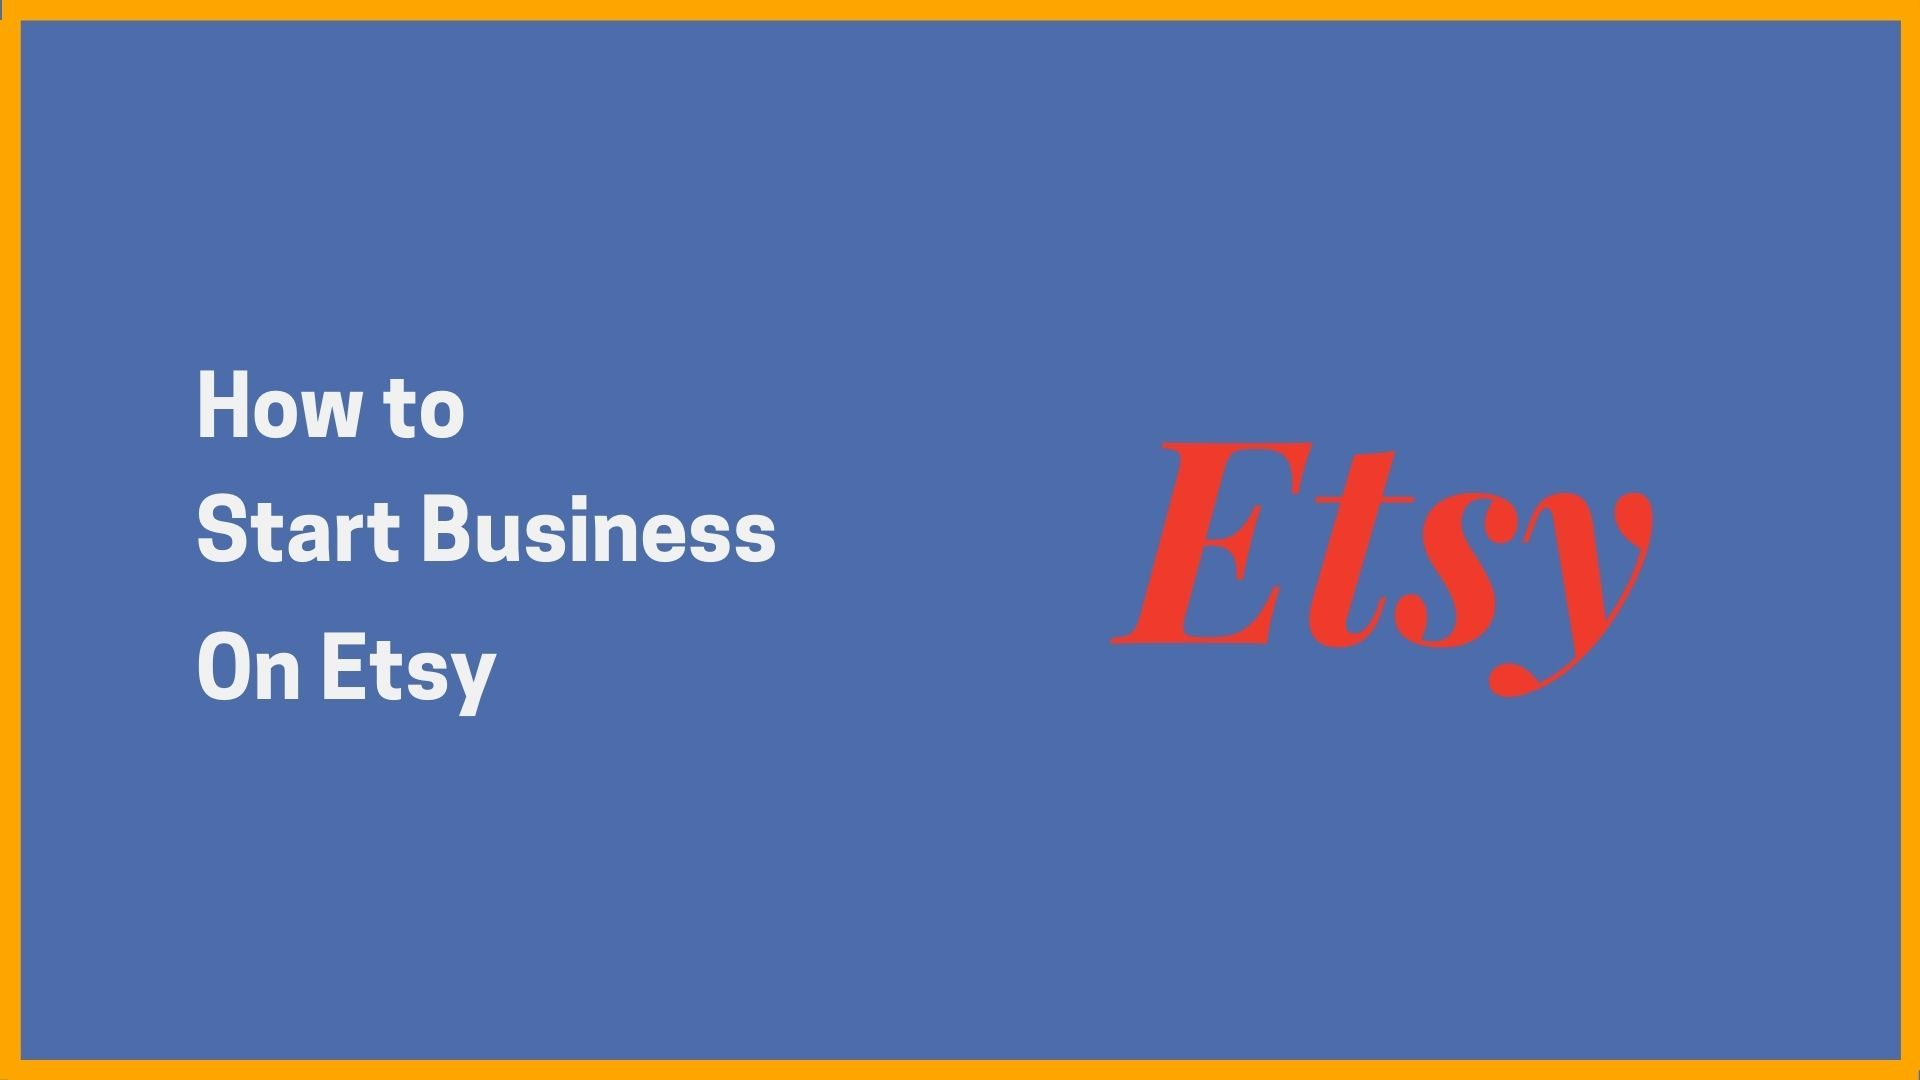 How To Start Business On Etsy